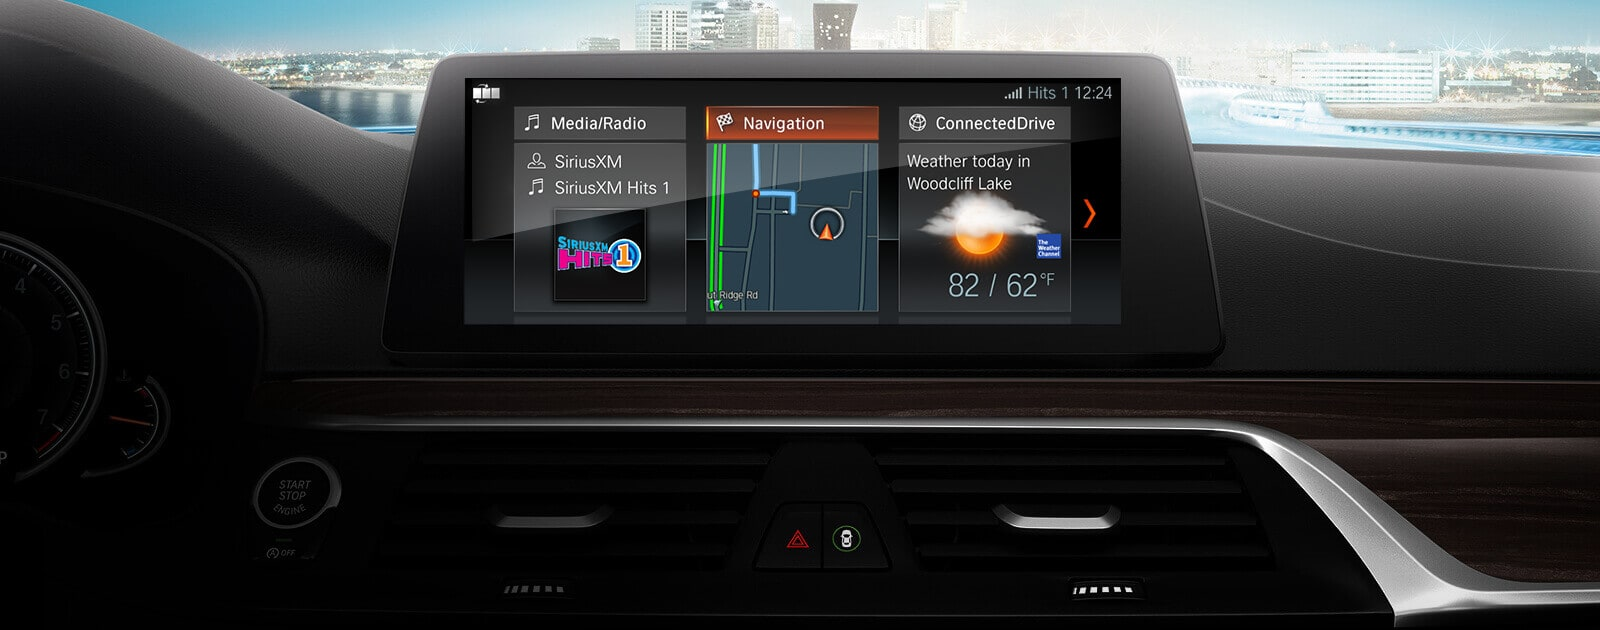 Standard Navigation in the 2019 BMW 5 Series